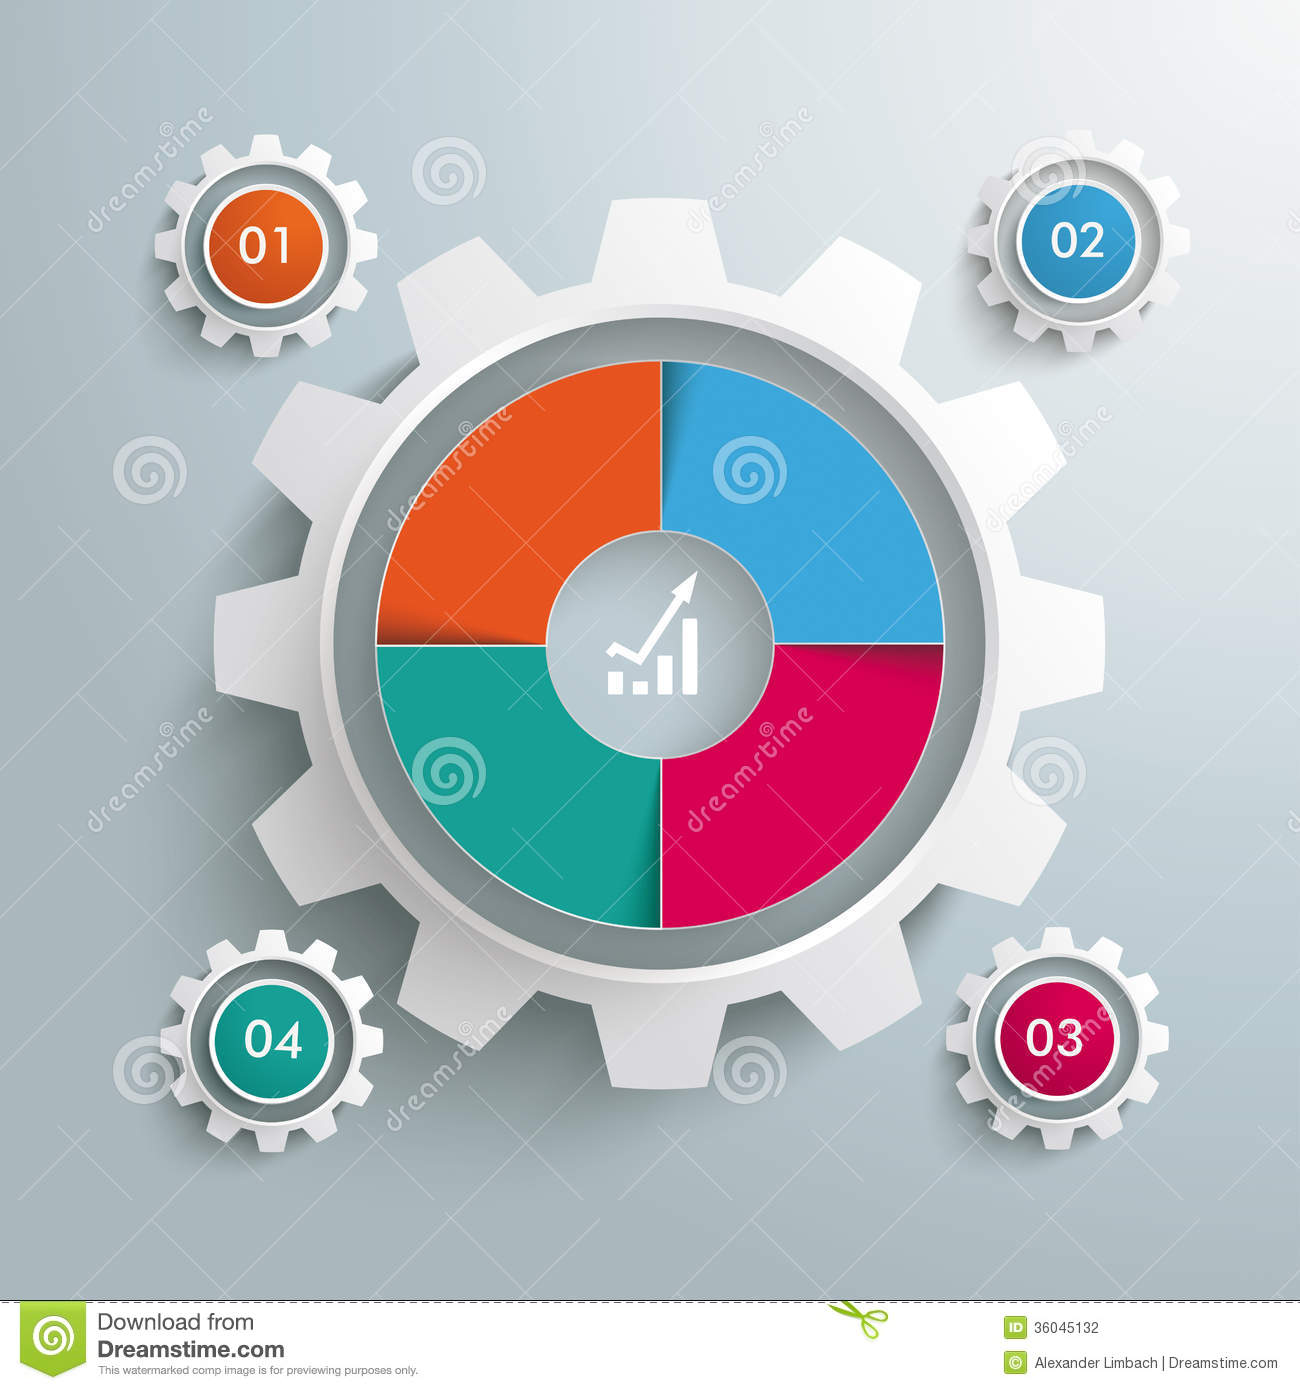 Infographic design on the grey background eps 10 vector file - Big Gear Colored 4 Options Cycle Piad Stock Photography